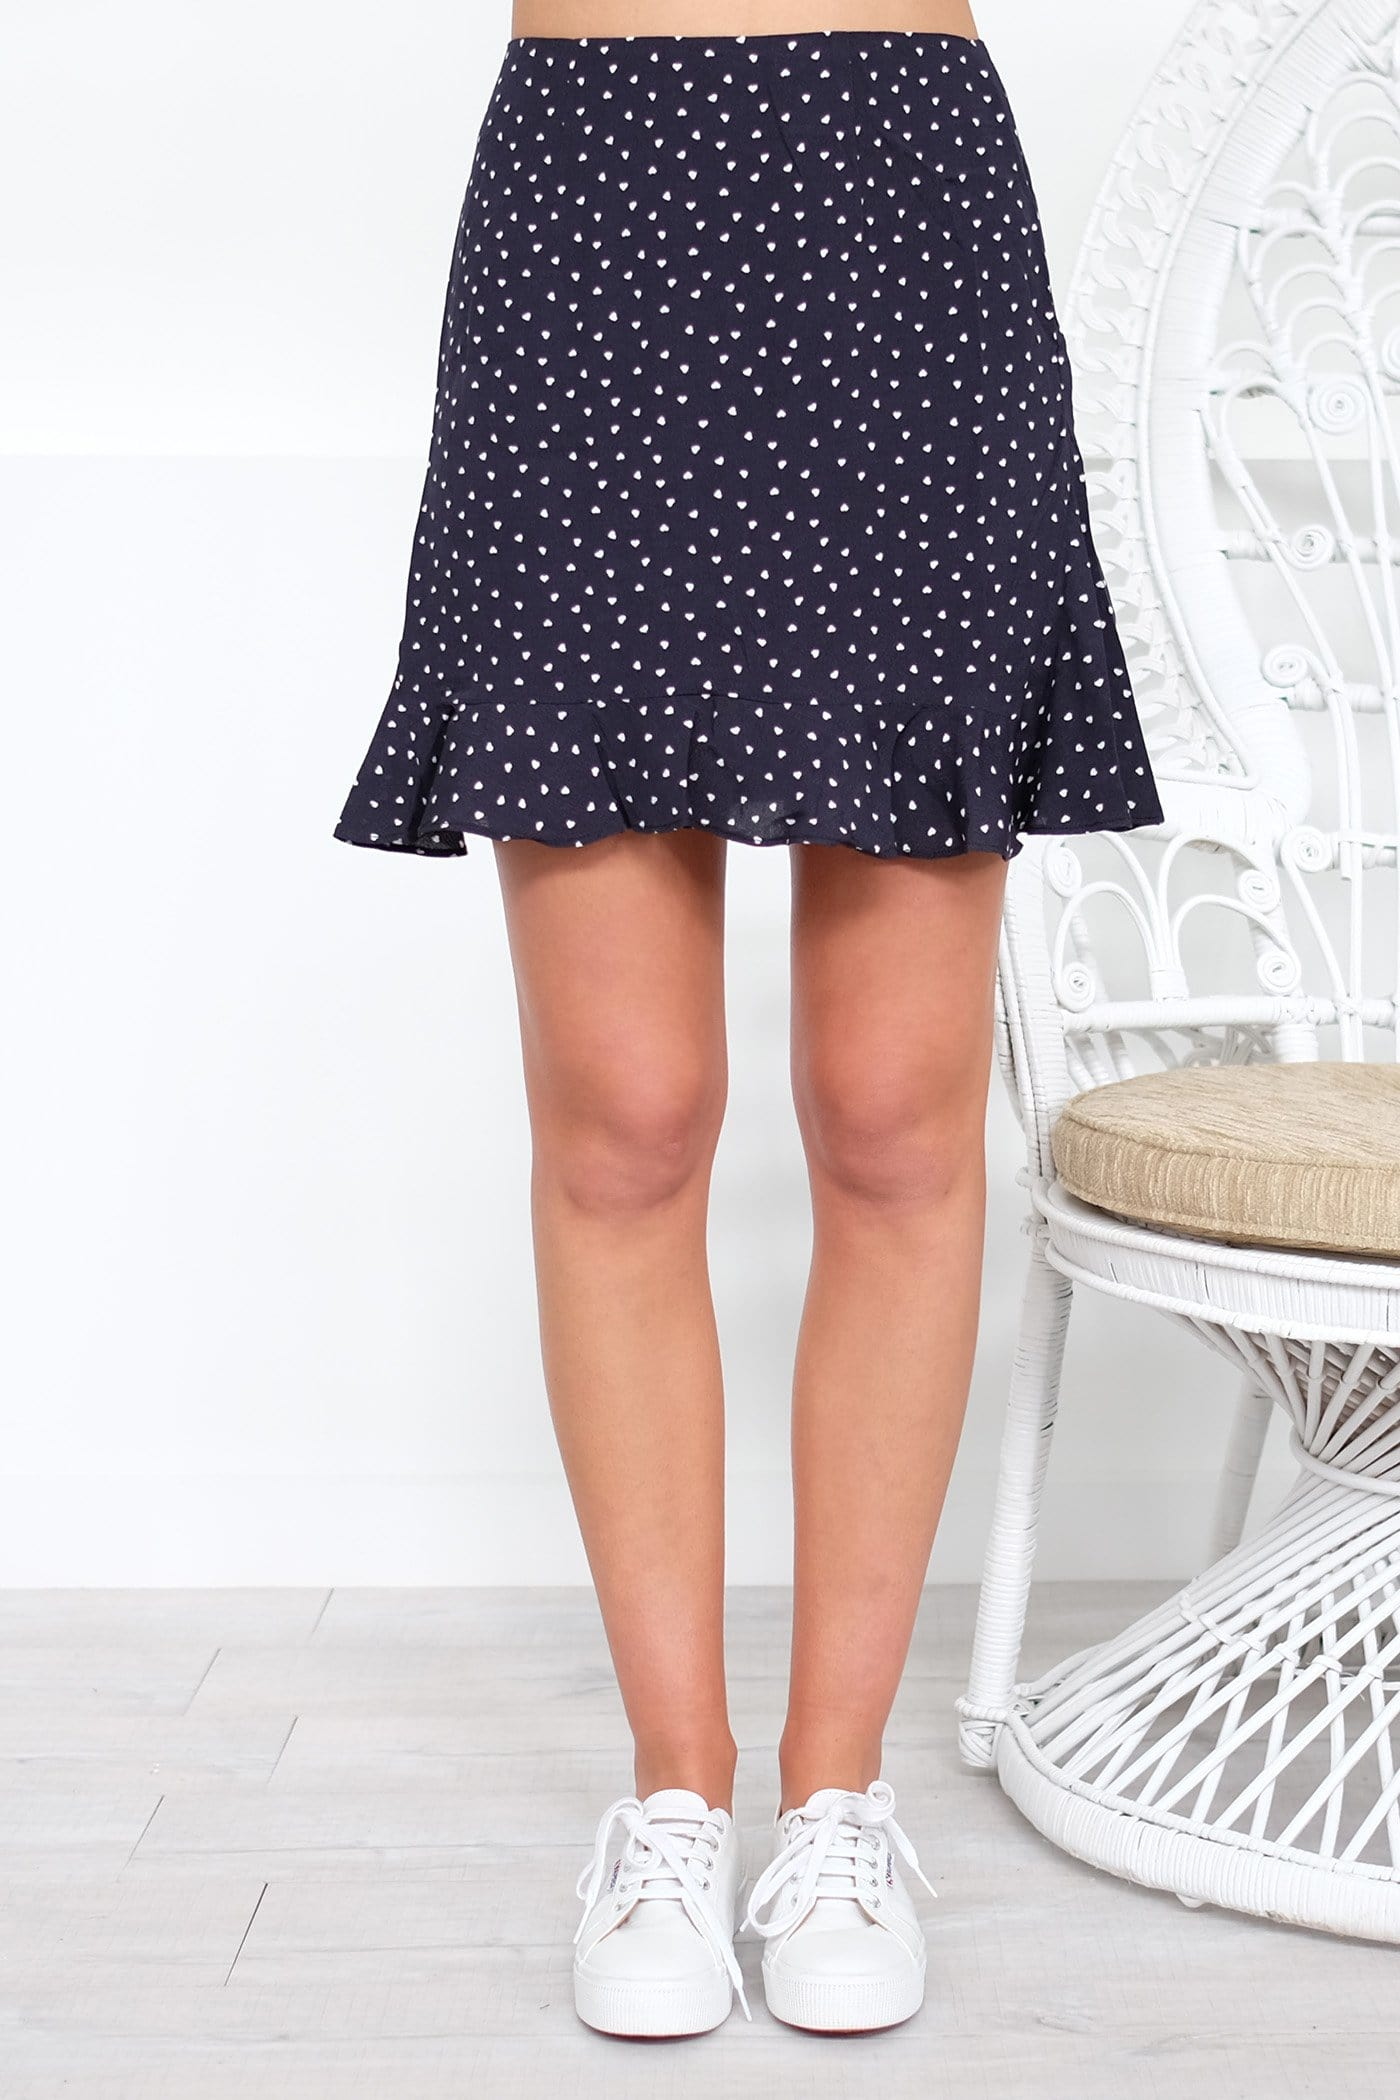 Amore Skirt Navy White Heart